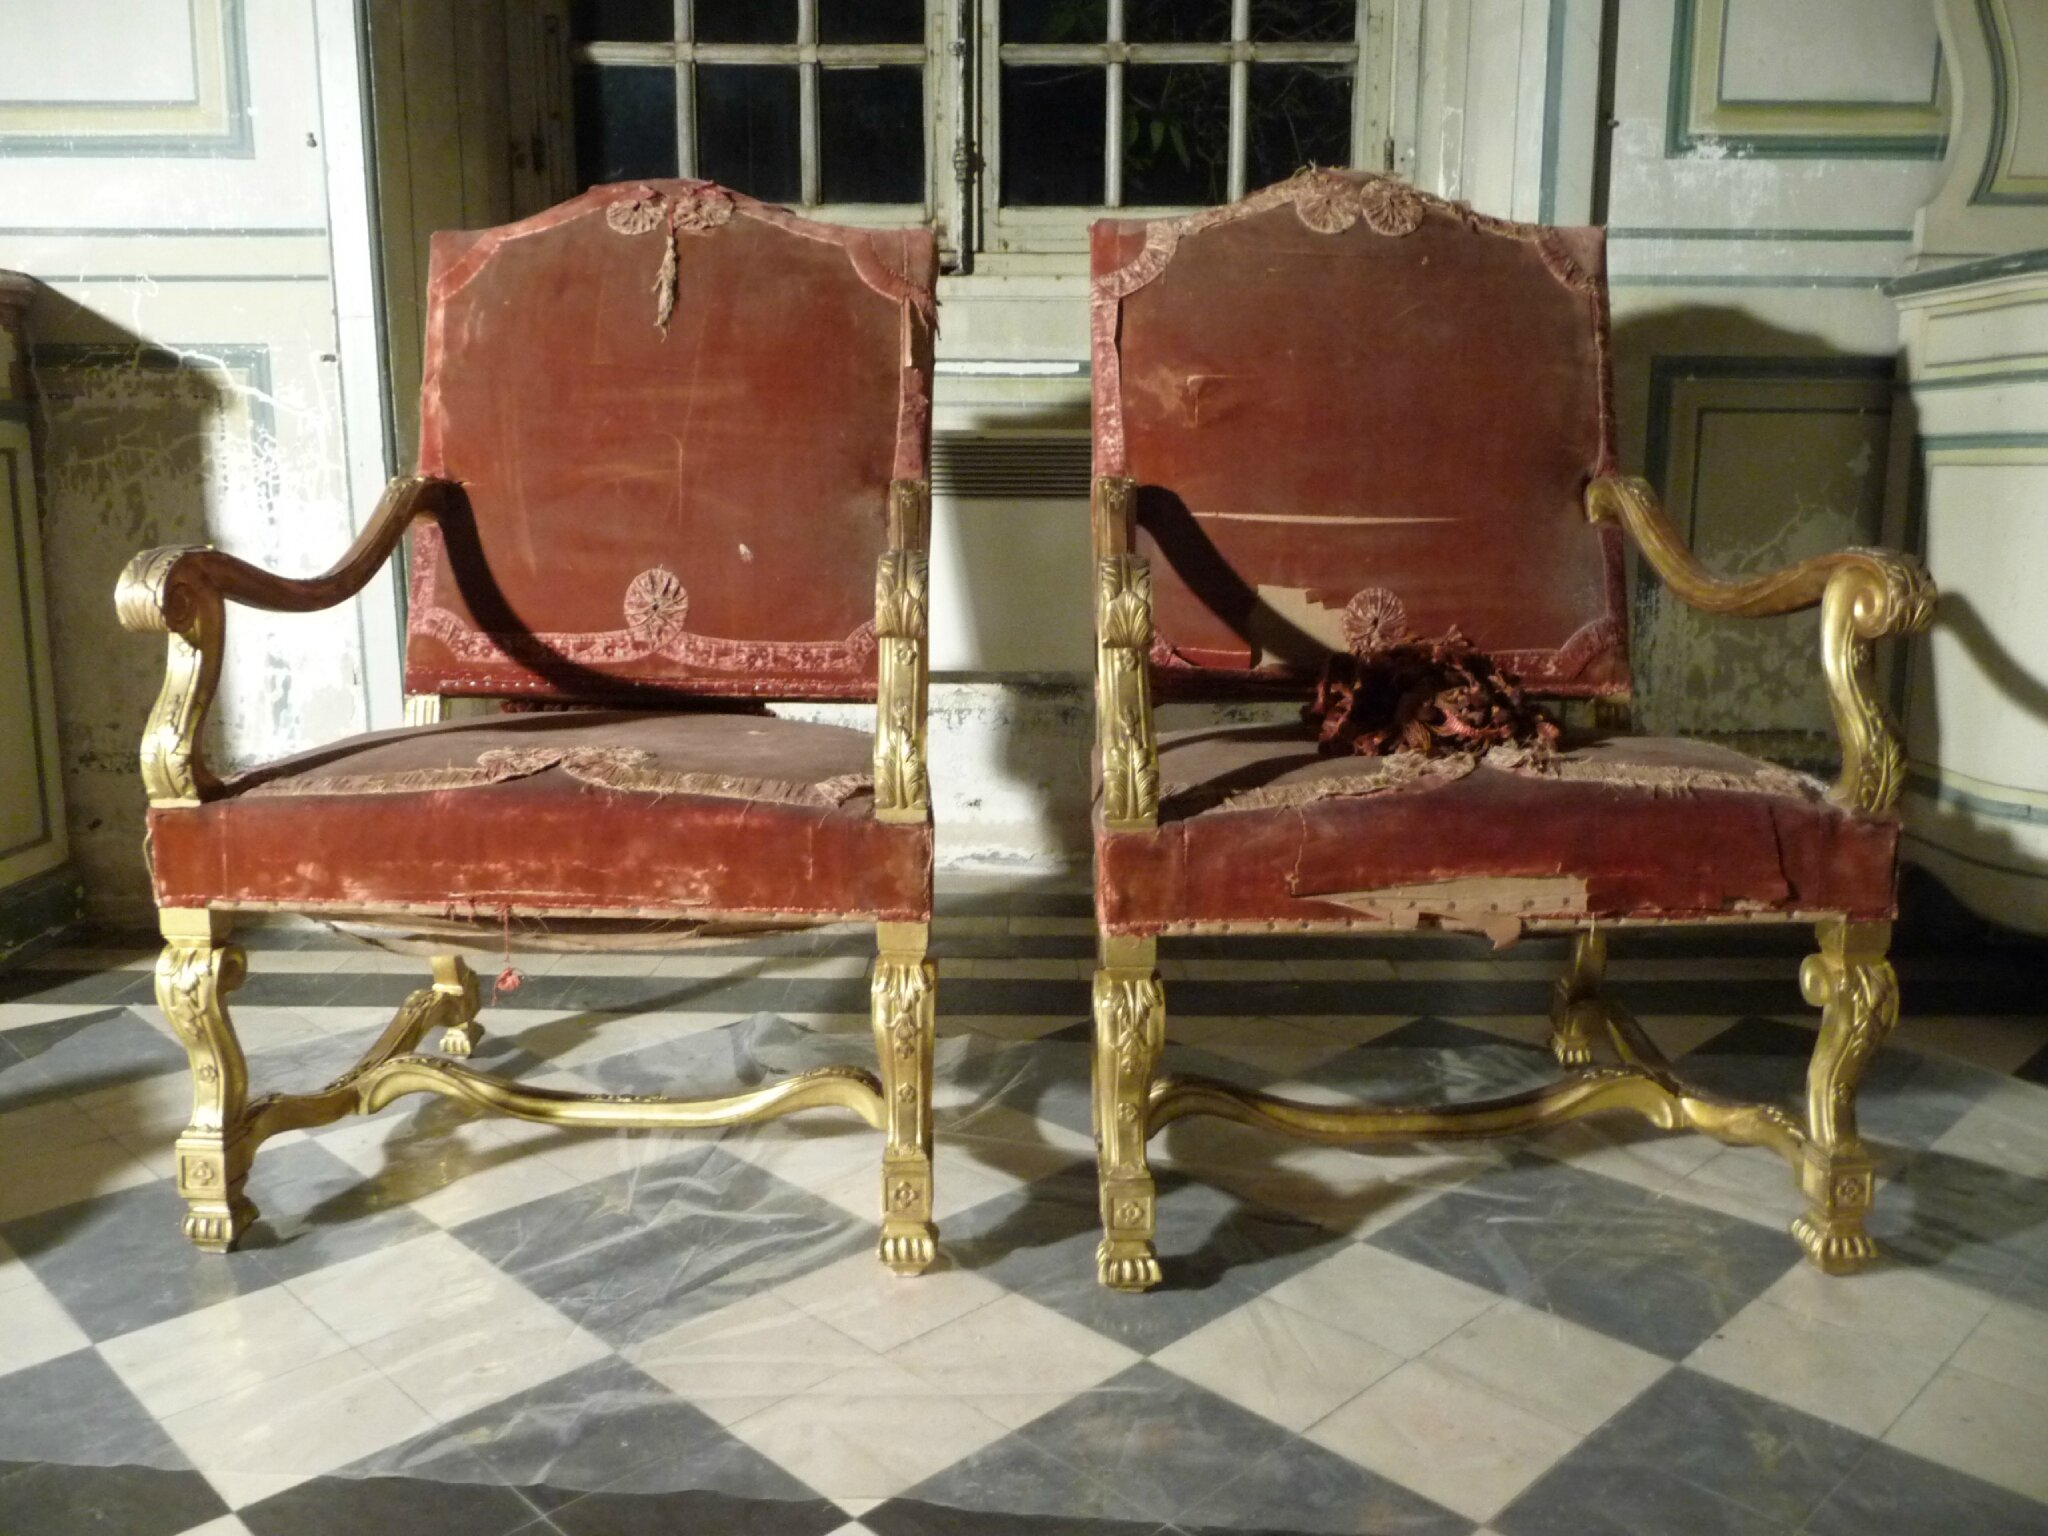 fauteuil 19 eme style louis xiv au chateau de champs sur marne damien de laage dorure. Black Bedroom Furniture Sets. Home Design Ideas